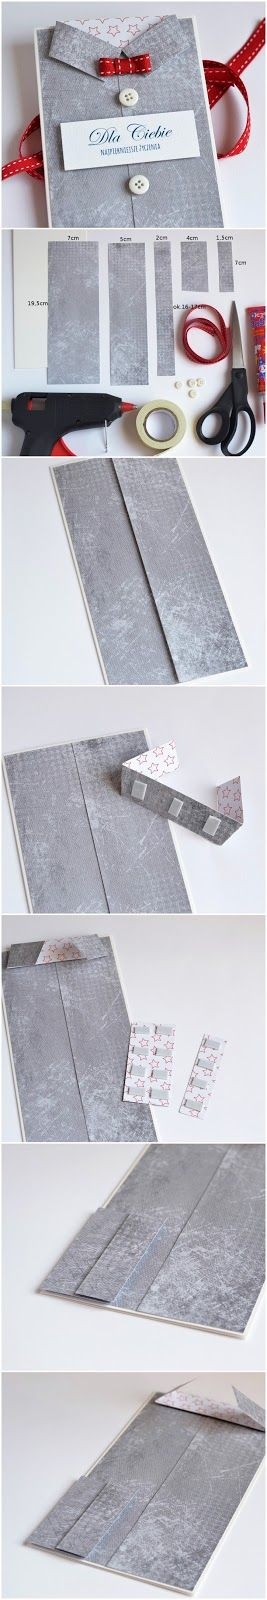 shirt card tutorial